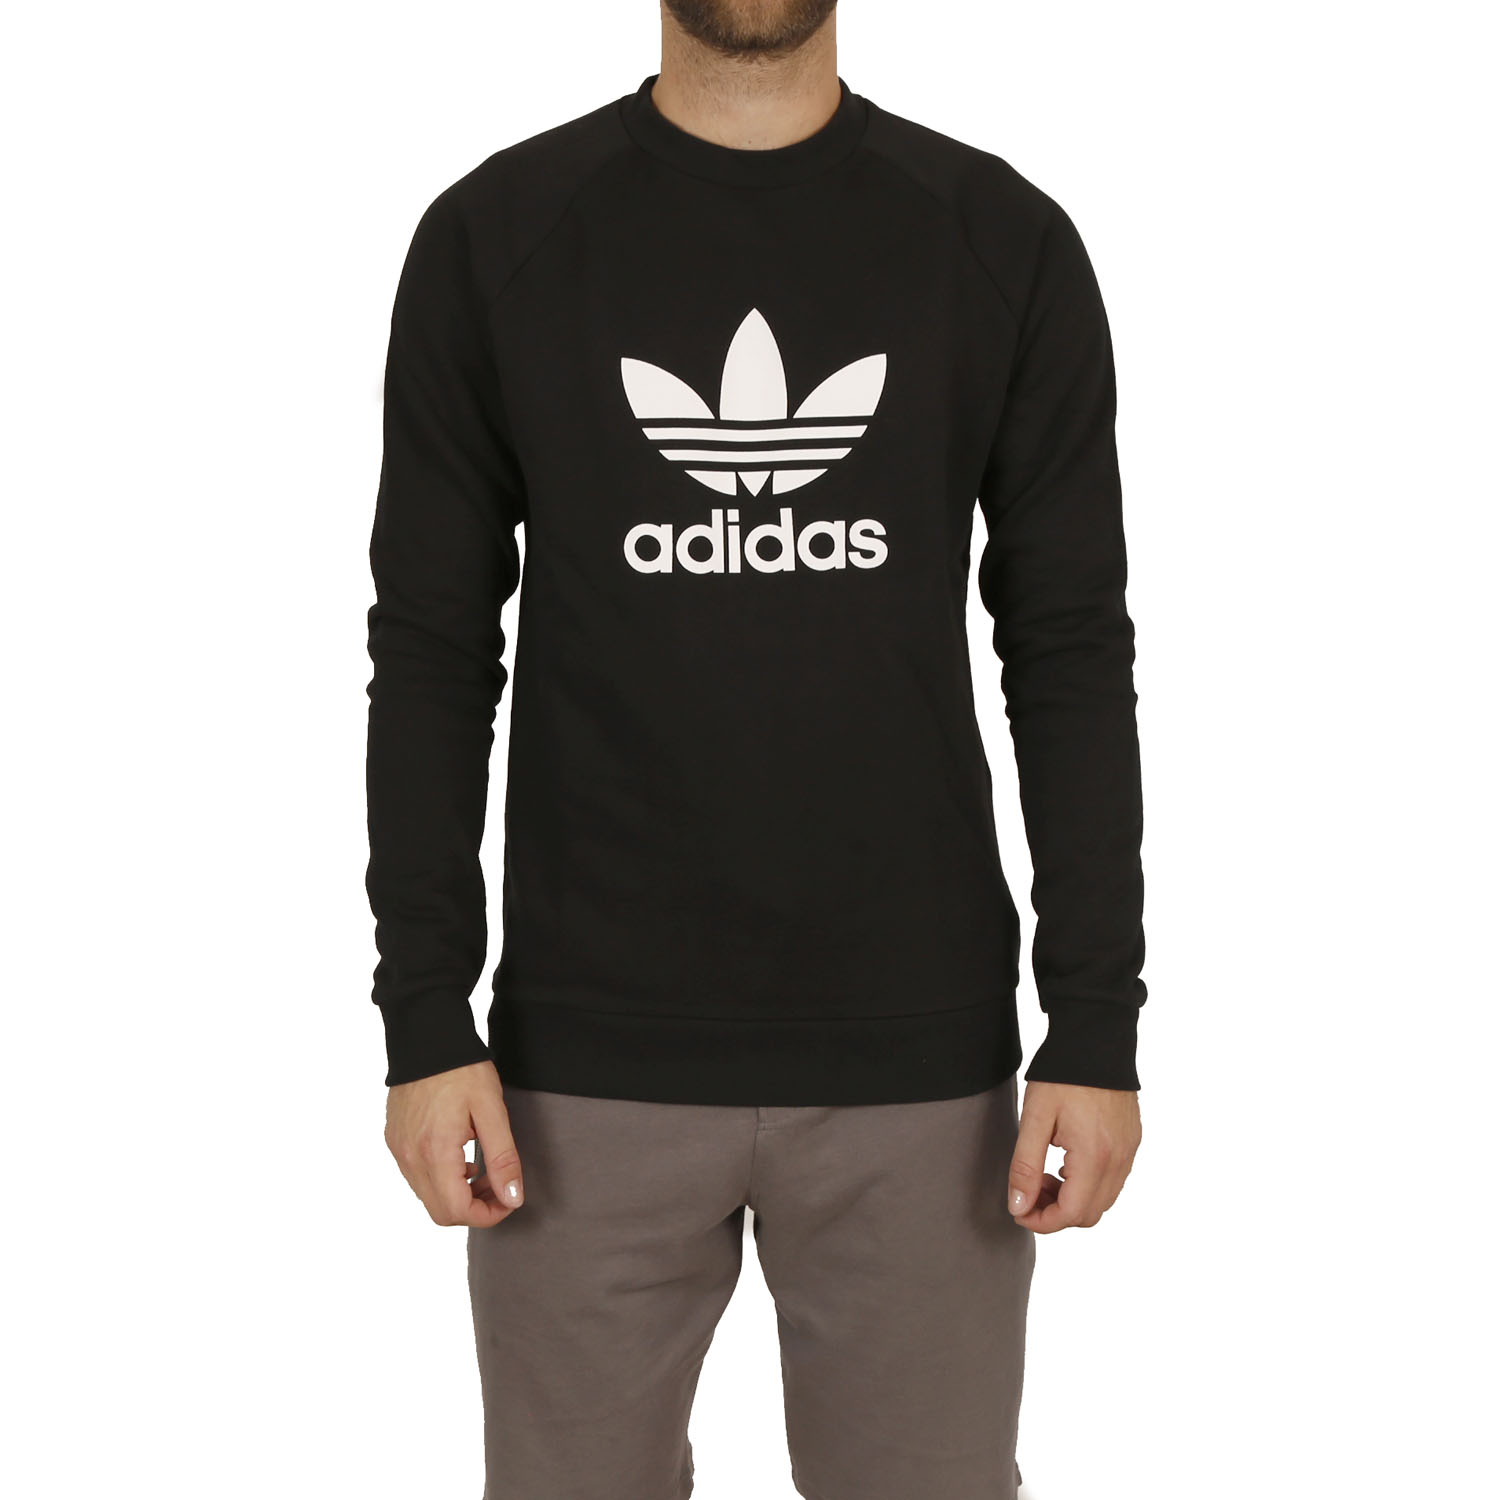 adidas Originals Trefoil Warm-up Crew Sweatshirt M ( CW1235 ) ρούχα    άνδρας    sweaters   hoodies   ζακέτες